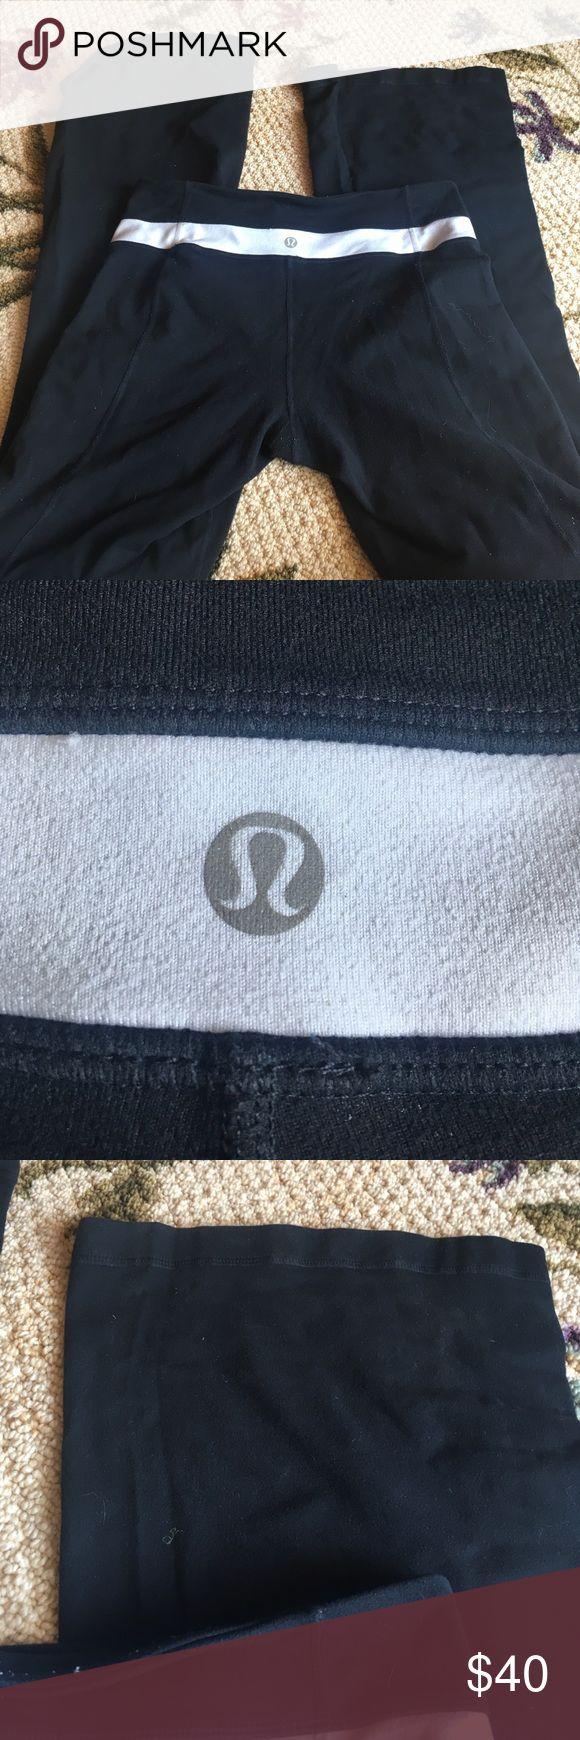 Lulu lemon leggings Lulu lemon leggings. Some pilling but nothing too bad. Love these just clearing out. Size 4 or 6. No holds good condition lululemon athletica Pants Leggings